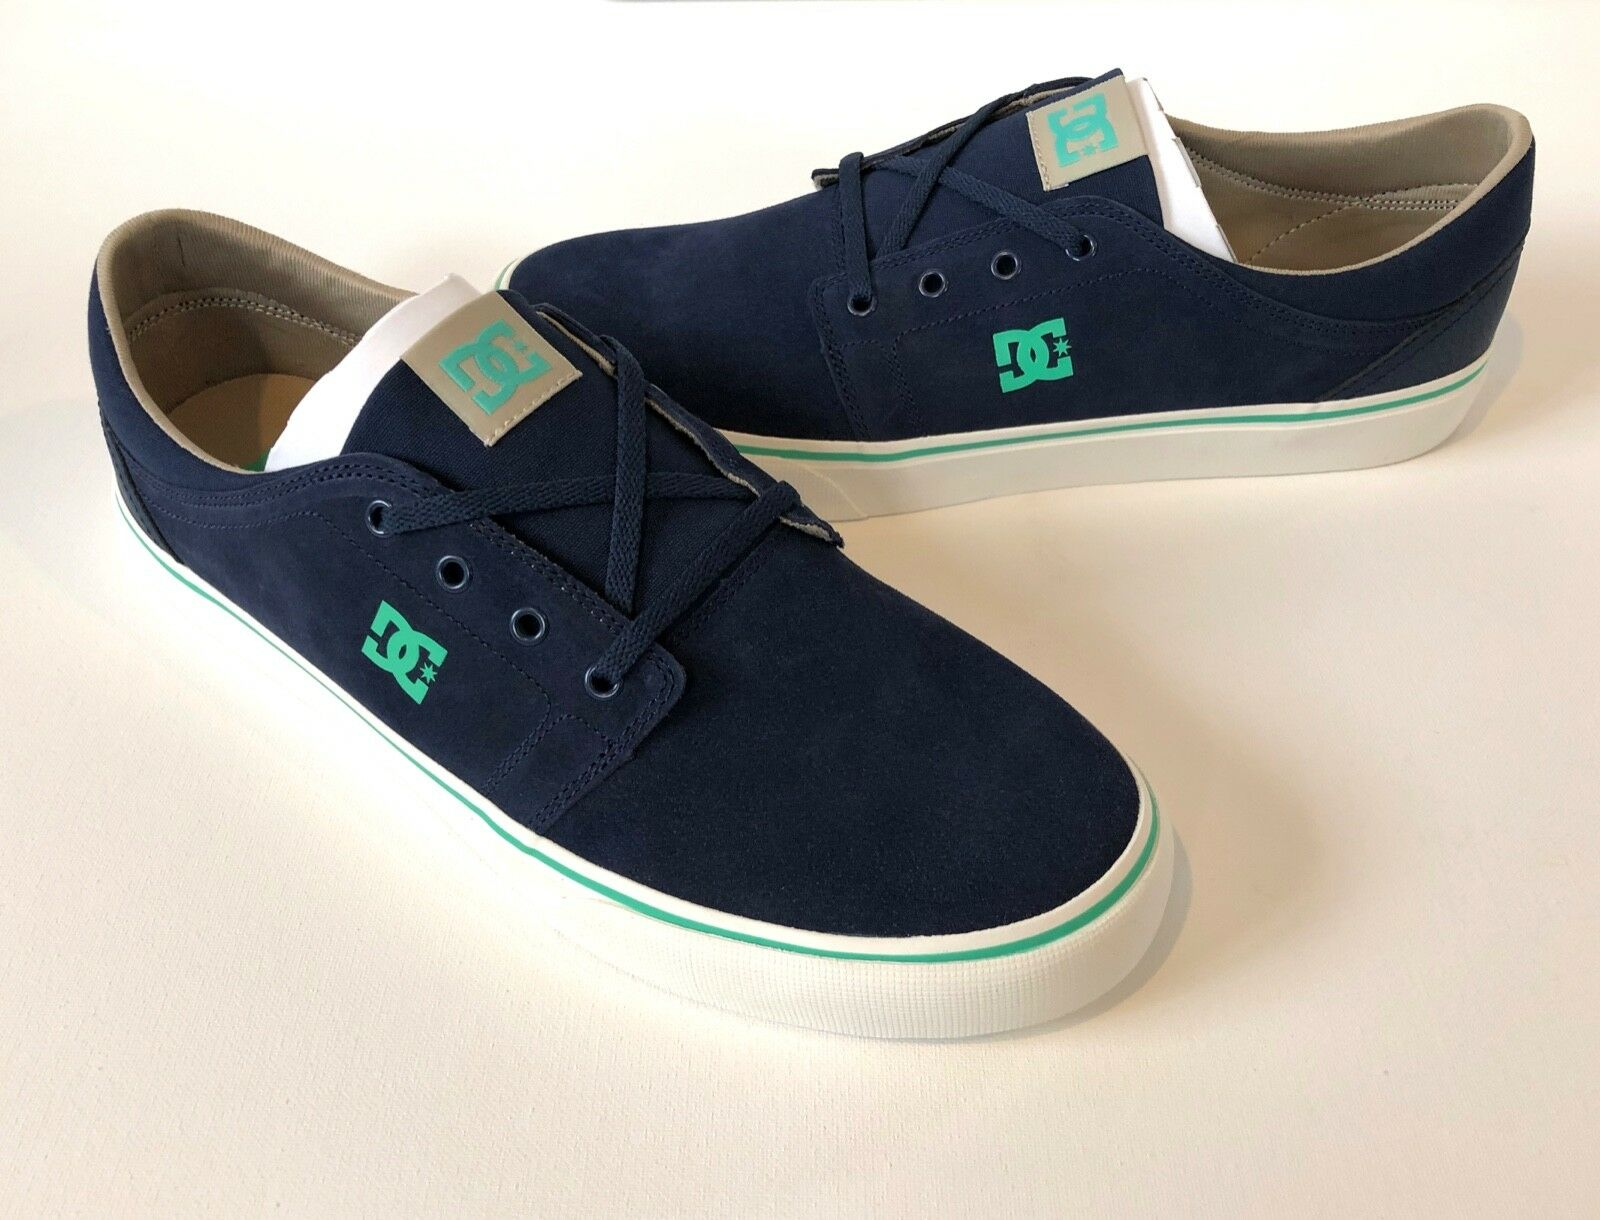 DC SHOES TRASE SD Navy / Turquoise SZ13